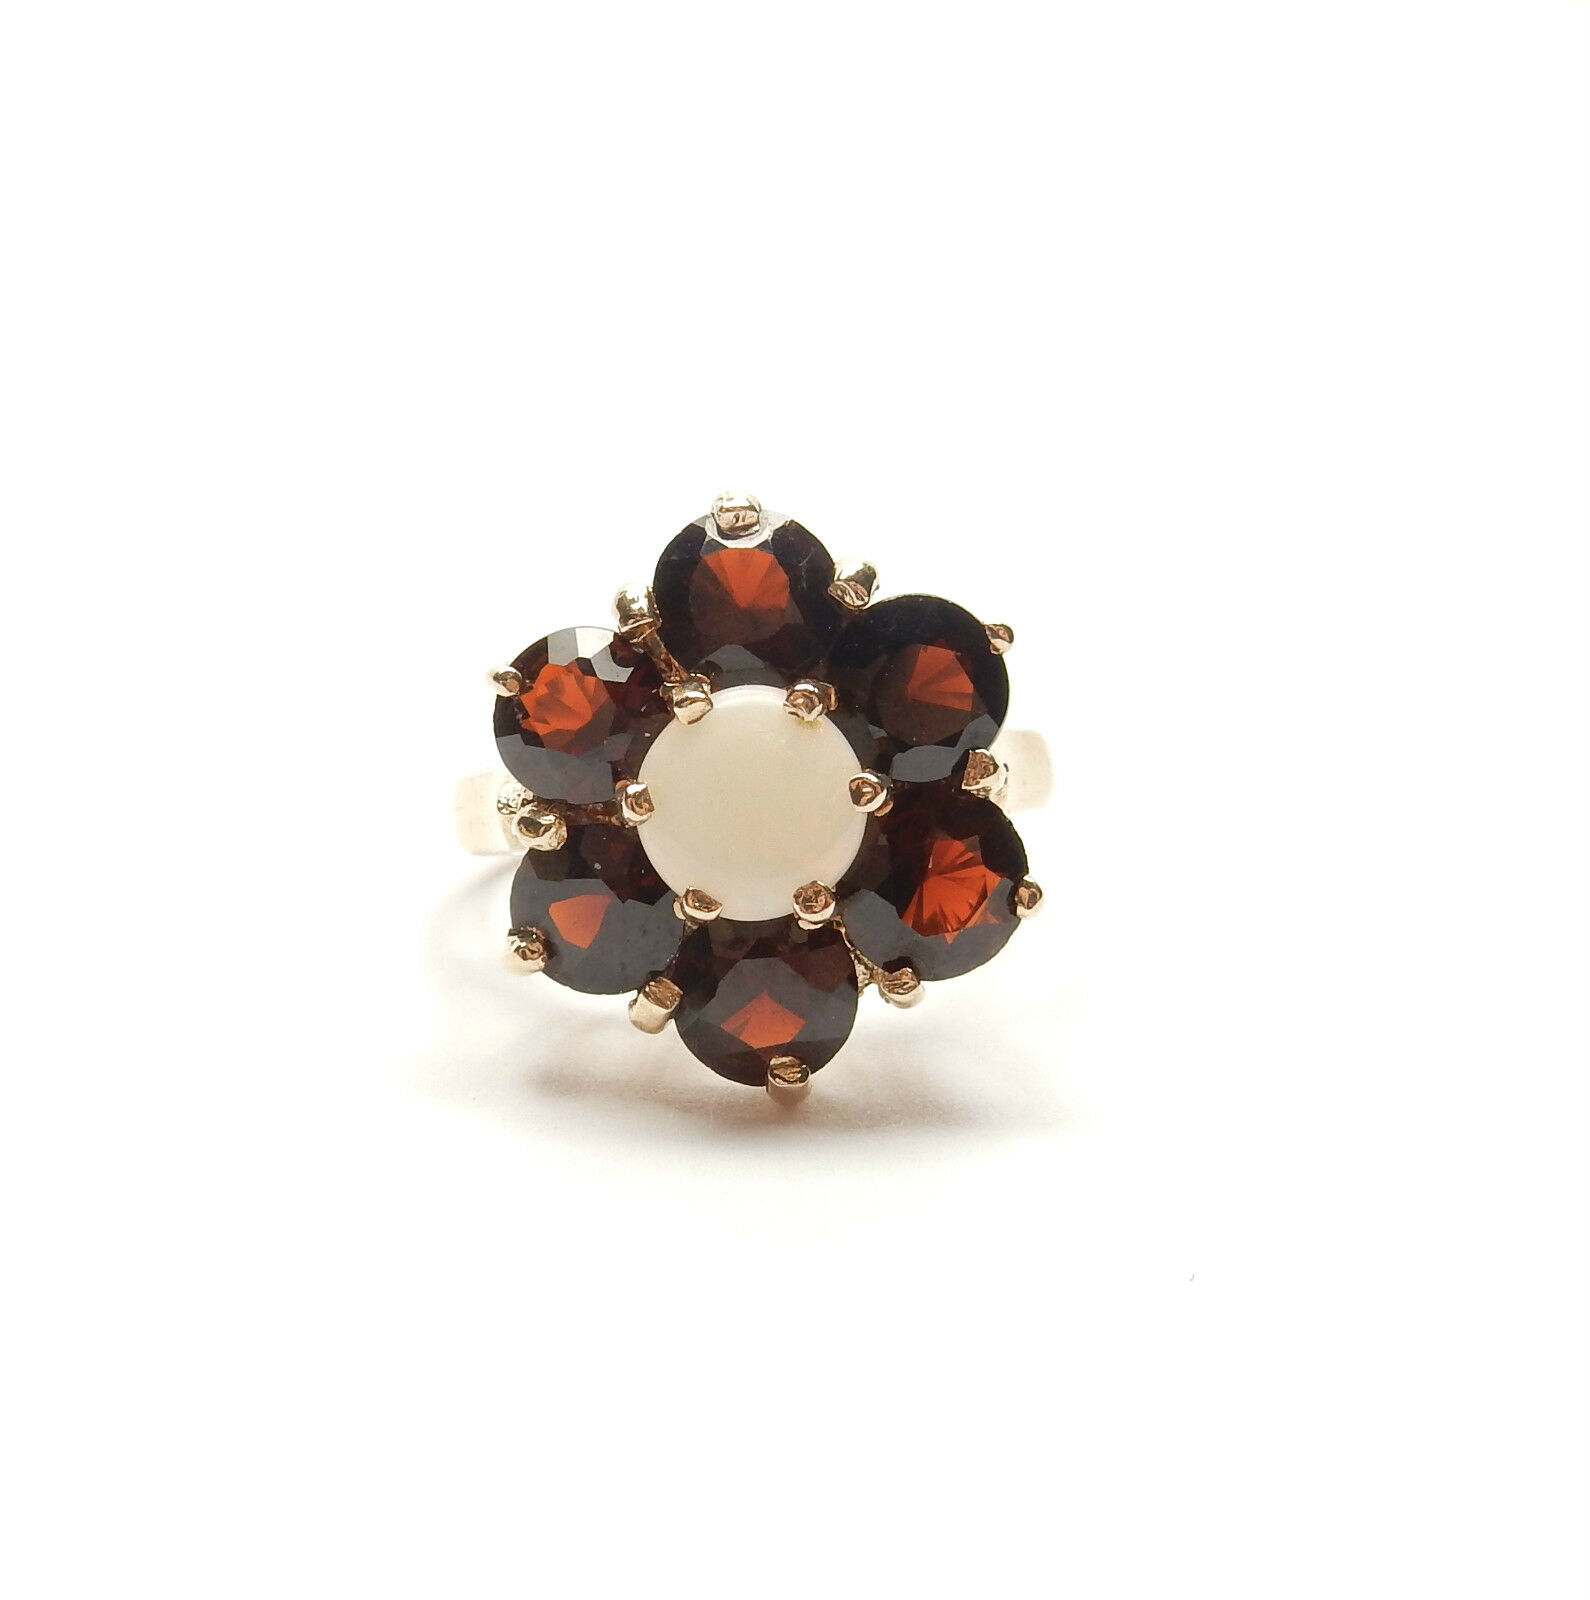 Opal And Garnet Cluster Ring 9 Carat Yellow gold London 1977 HM 3.4g